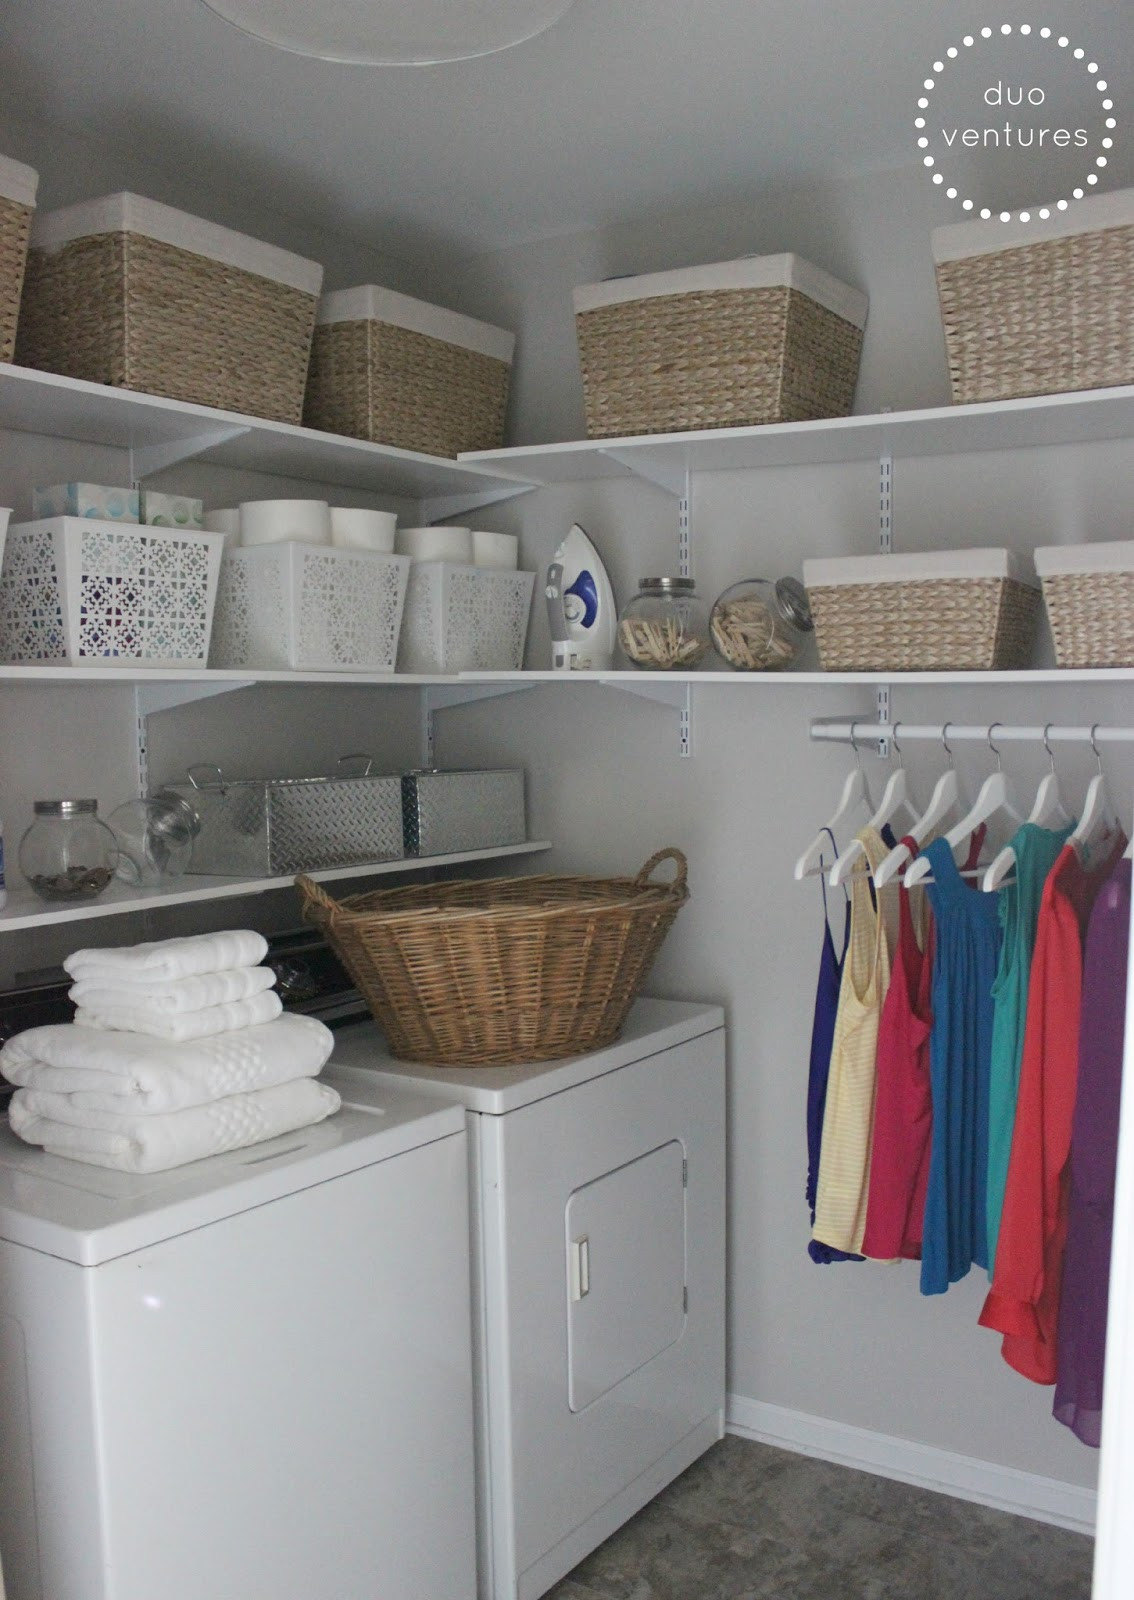 Best ideas about Small Laundry Room Storage Ideas . Save or Pin Duo Ventures Laundry Room Makeover Now.